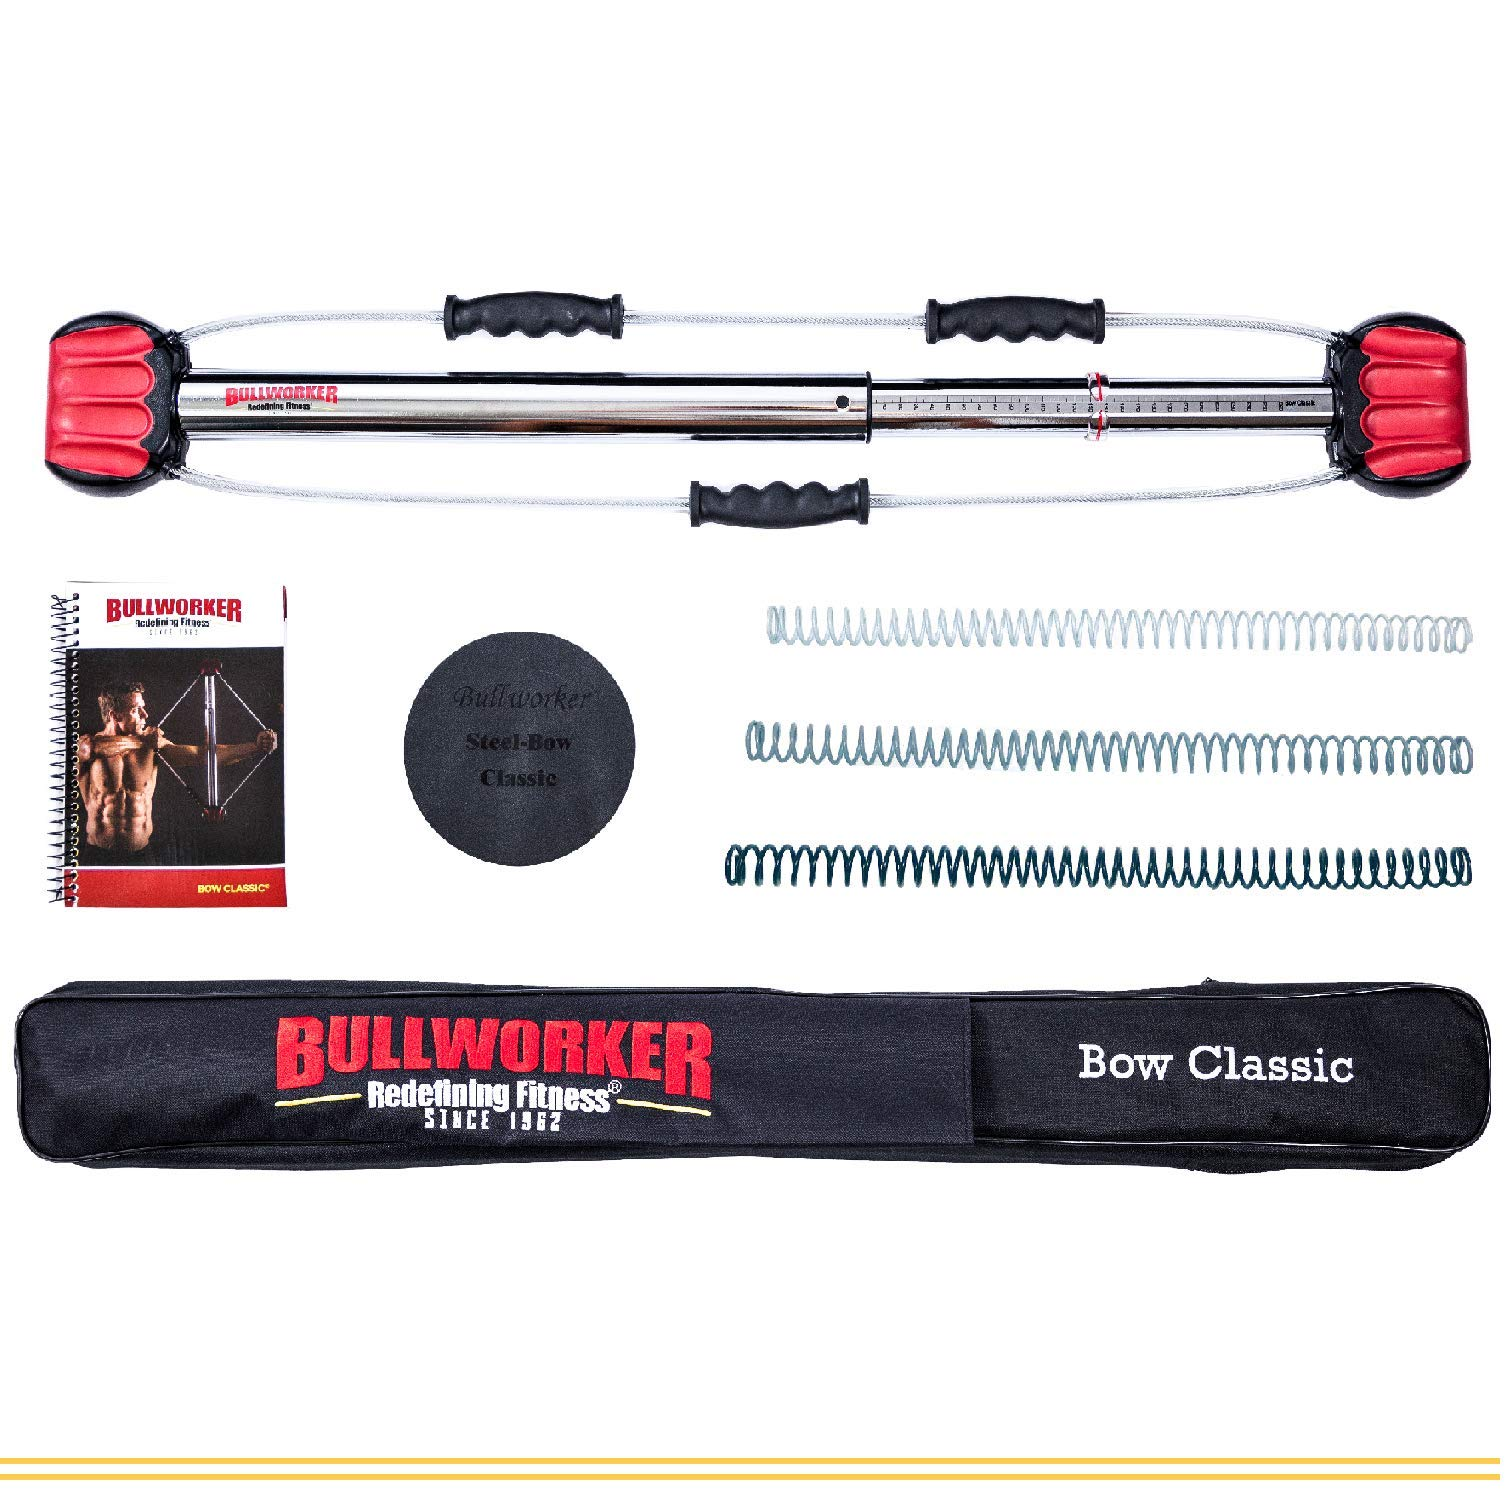 Bullworker 36'' Bow Classic -Full Body Workout- Portable Home Gym Isometric Exercise Equipment for Fast Strength Training Gains. Cross Training Fitness; Chest, Back, Arms, and Abs Exercise Machine by Bullworker (Image #1)